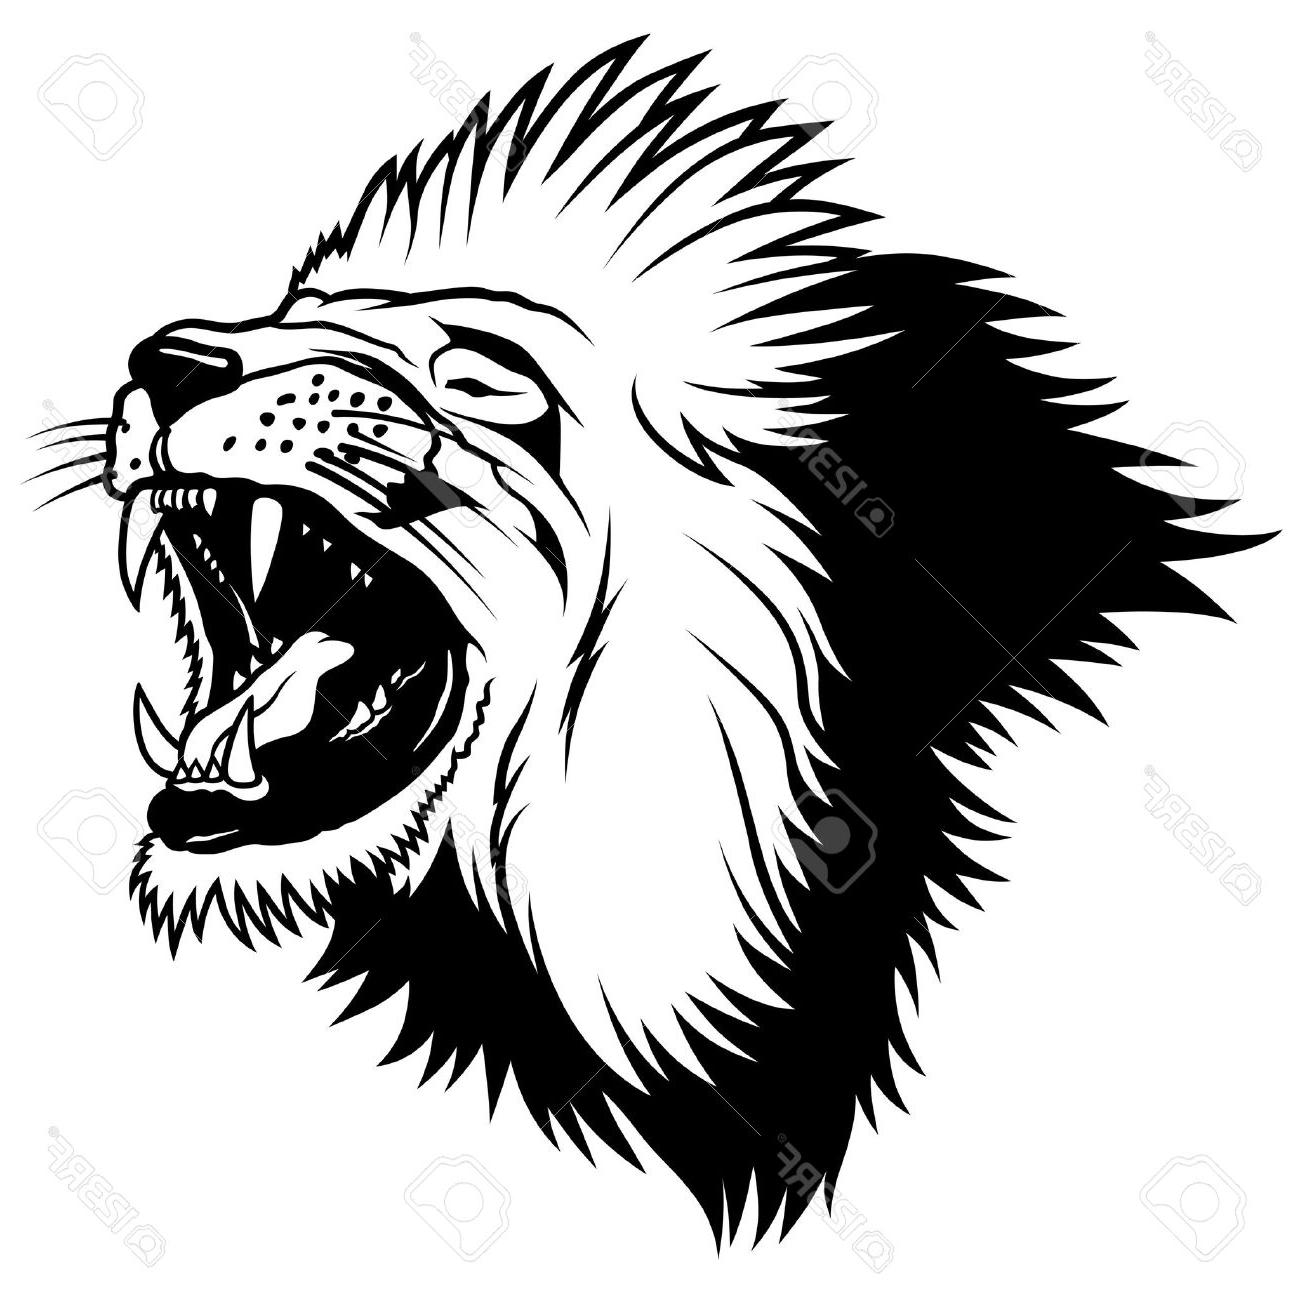 1300x1300 Best Hd Lion Head Hand Drawn Illustration Stock Vector Outline